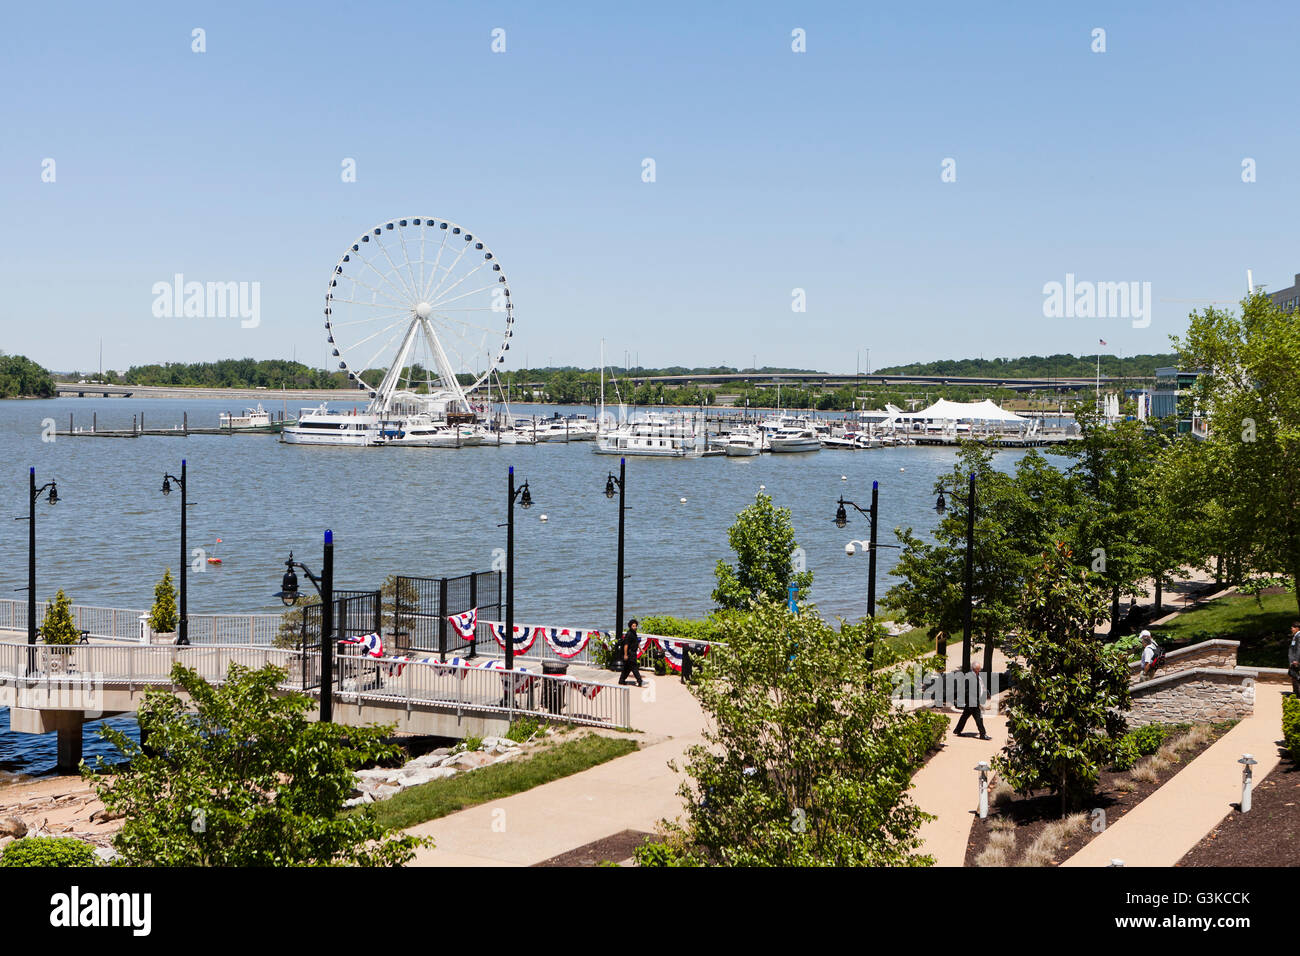 The Capital Wheel - National Harbor, Maryland USA - Stock Image